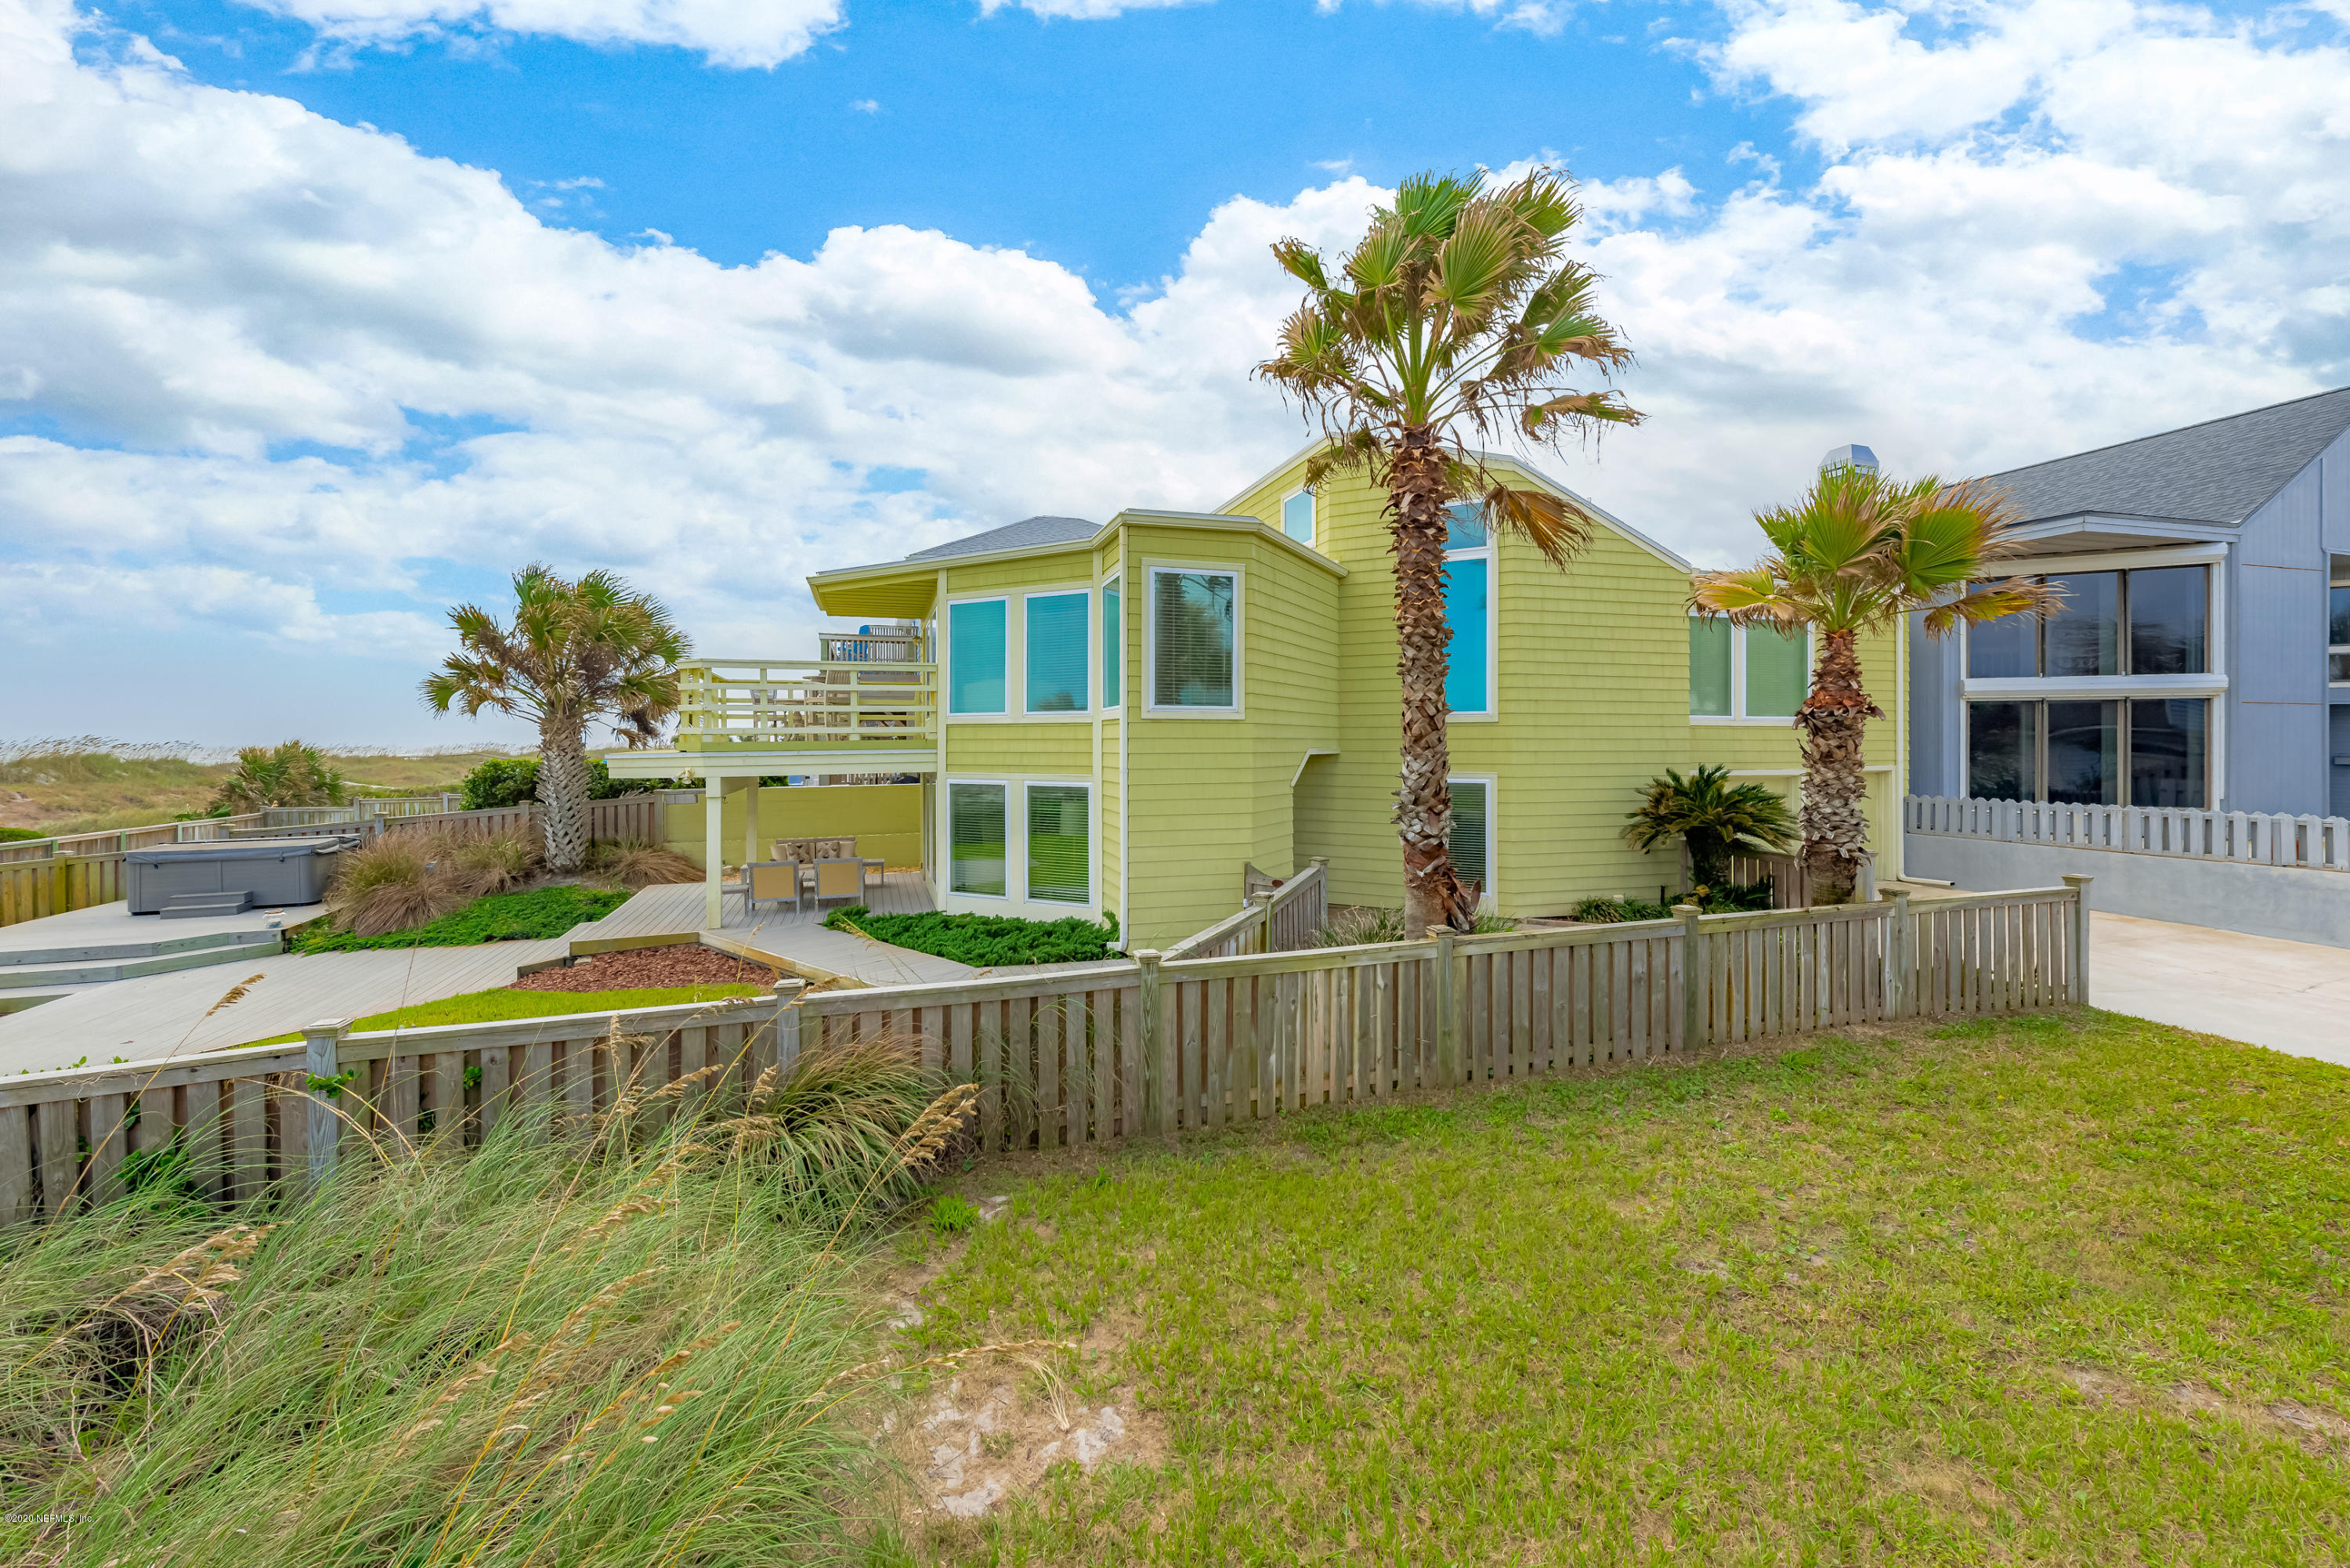 93 Orange St Neptune Beach, Fl 32266